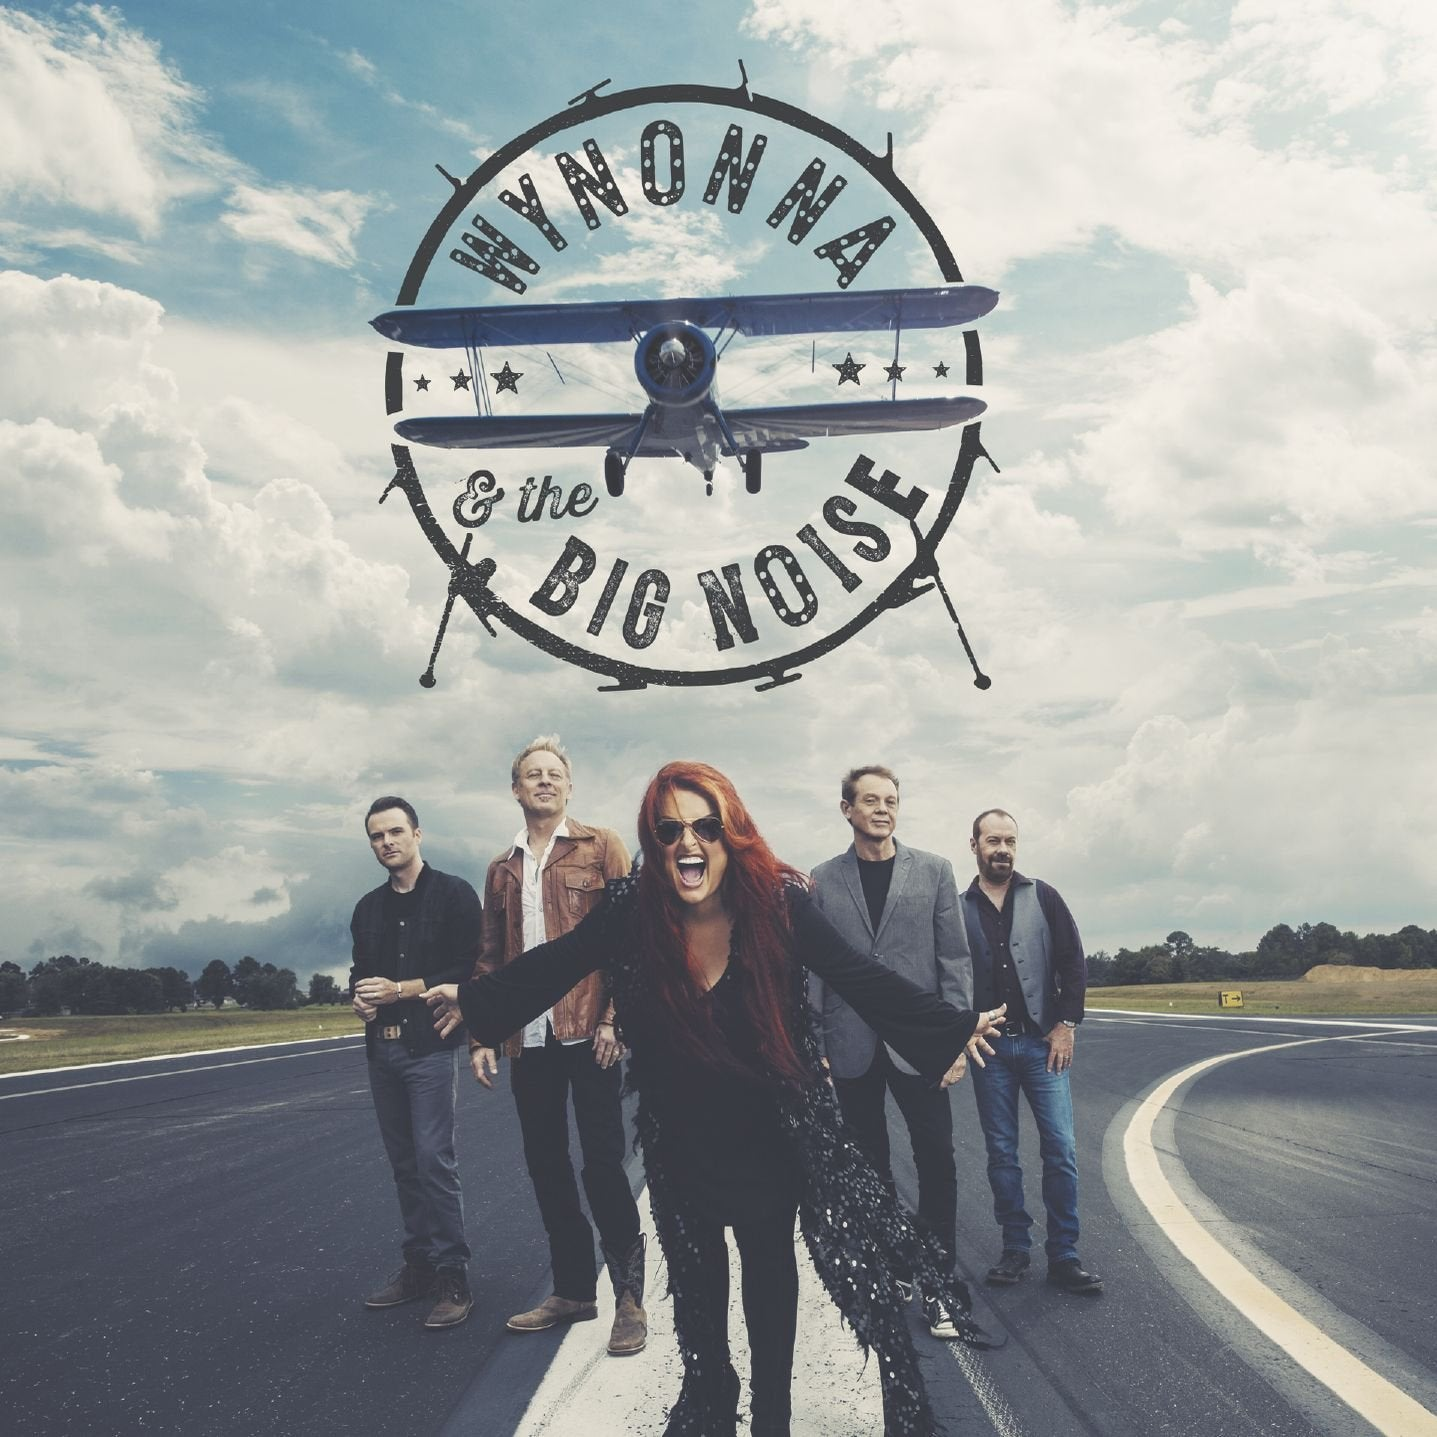 Wynonna and the Big Noise CDs